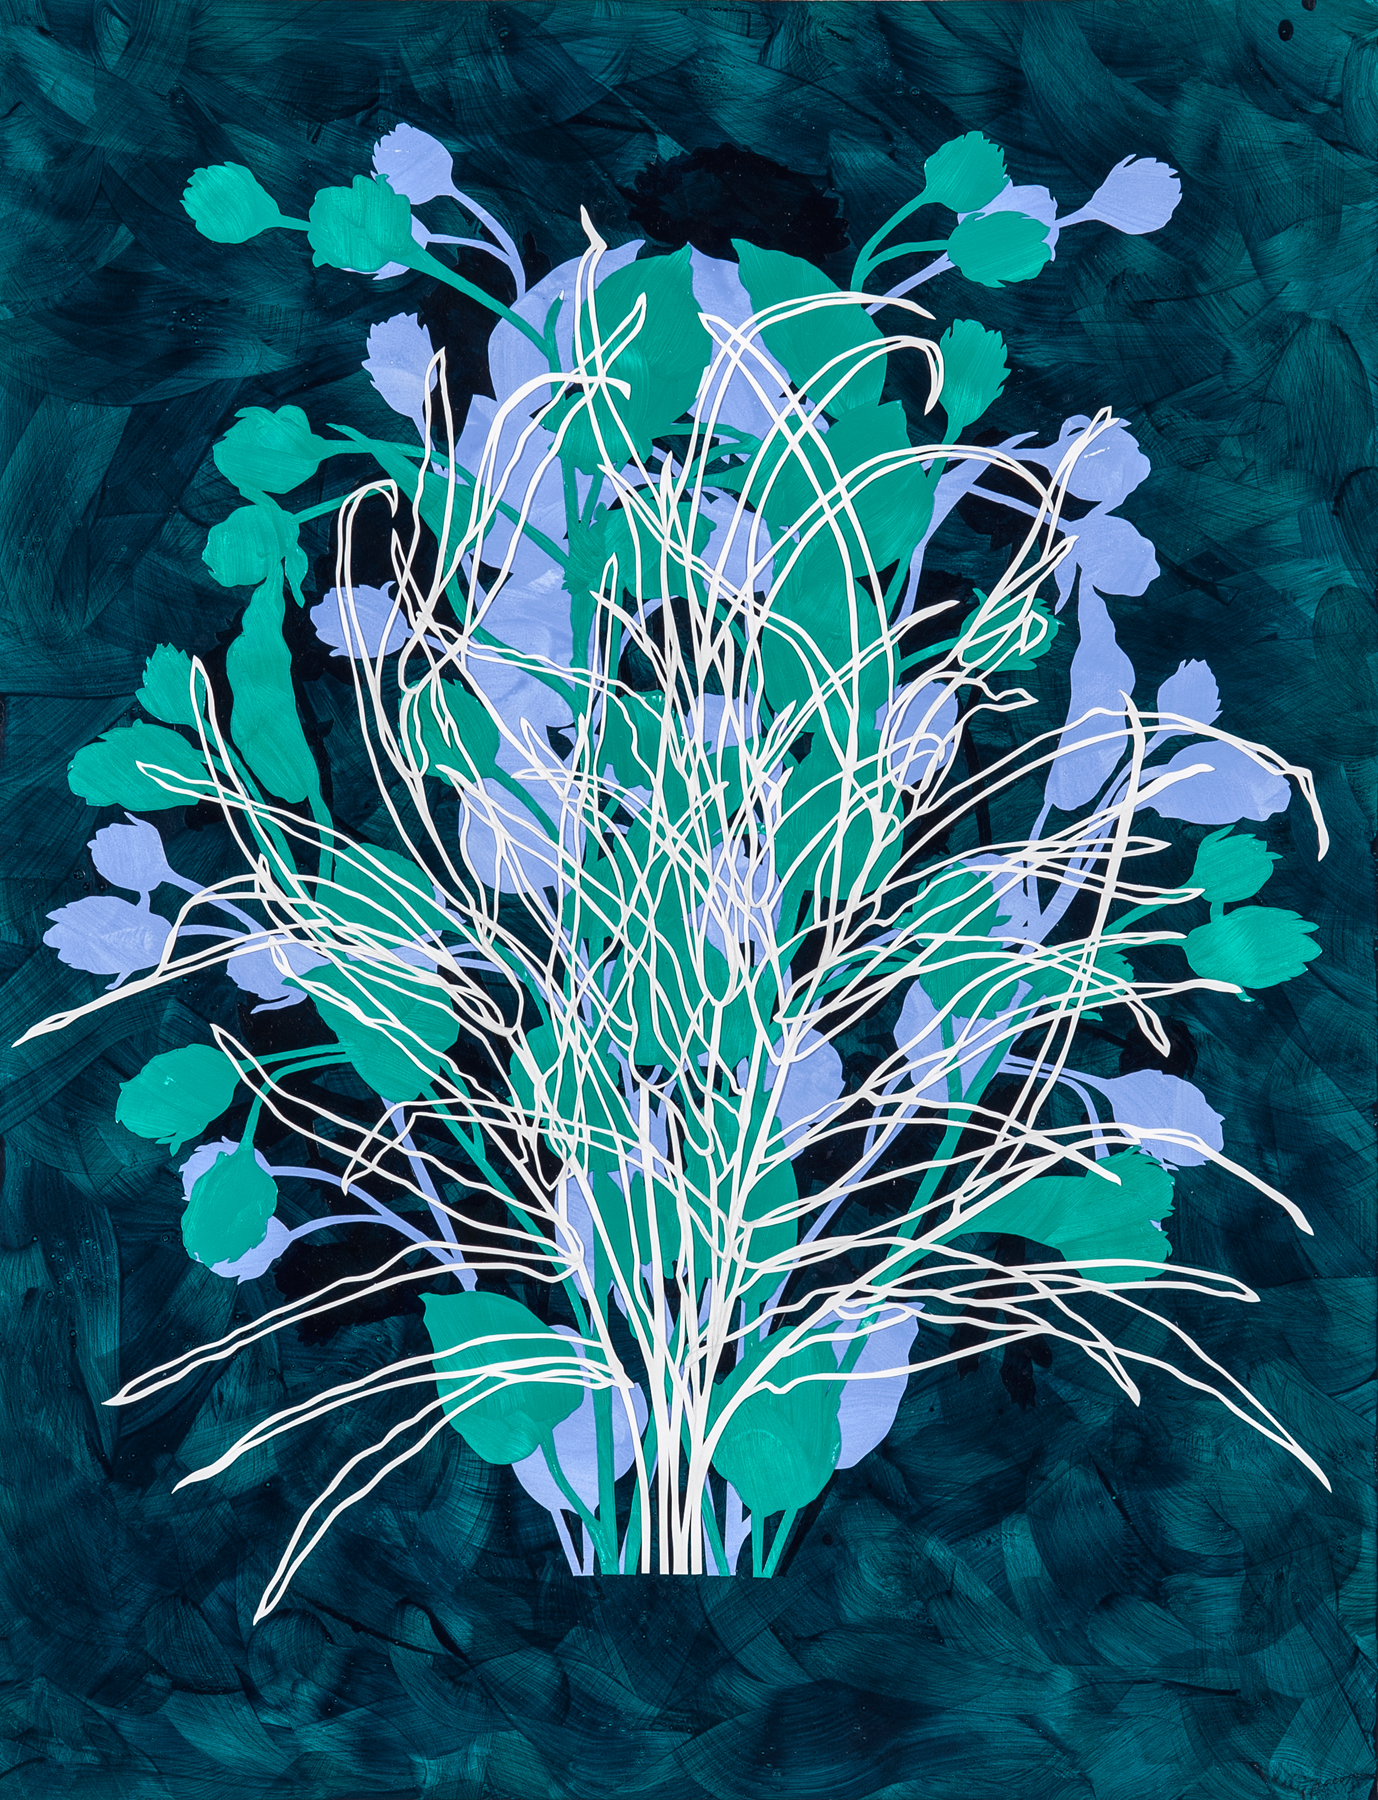 Botanic Construction V , 2018 hand-painted cut paper, 24 x 17 inches